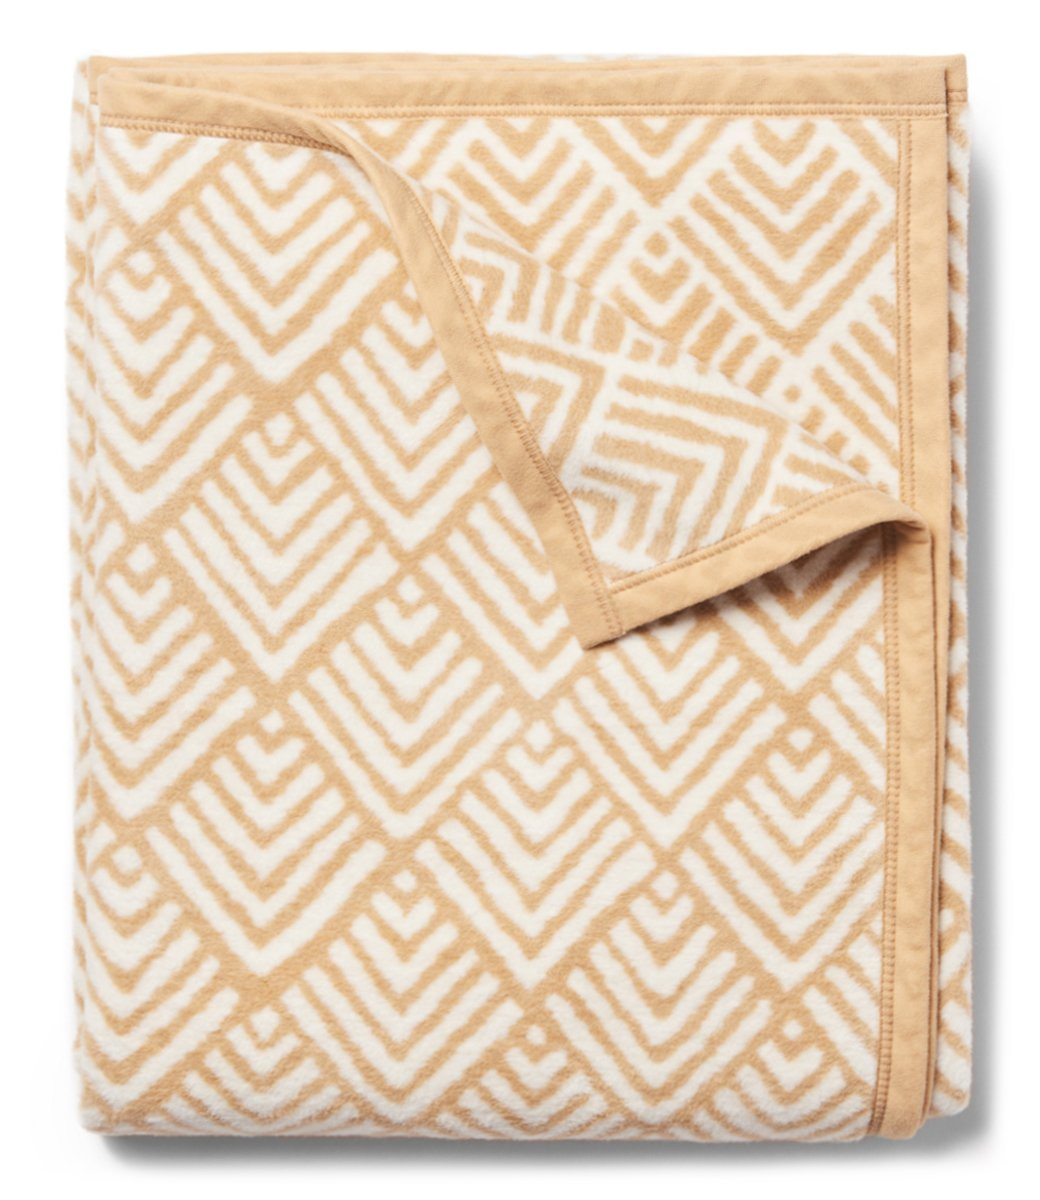 CHAPPY WRAP BLANKET - OYSTER COVE DIAMONDS